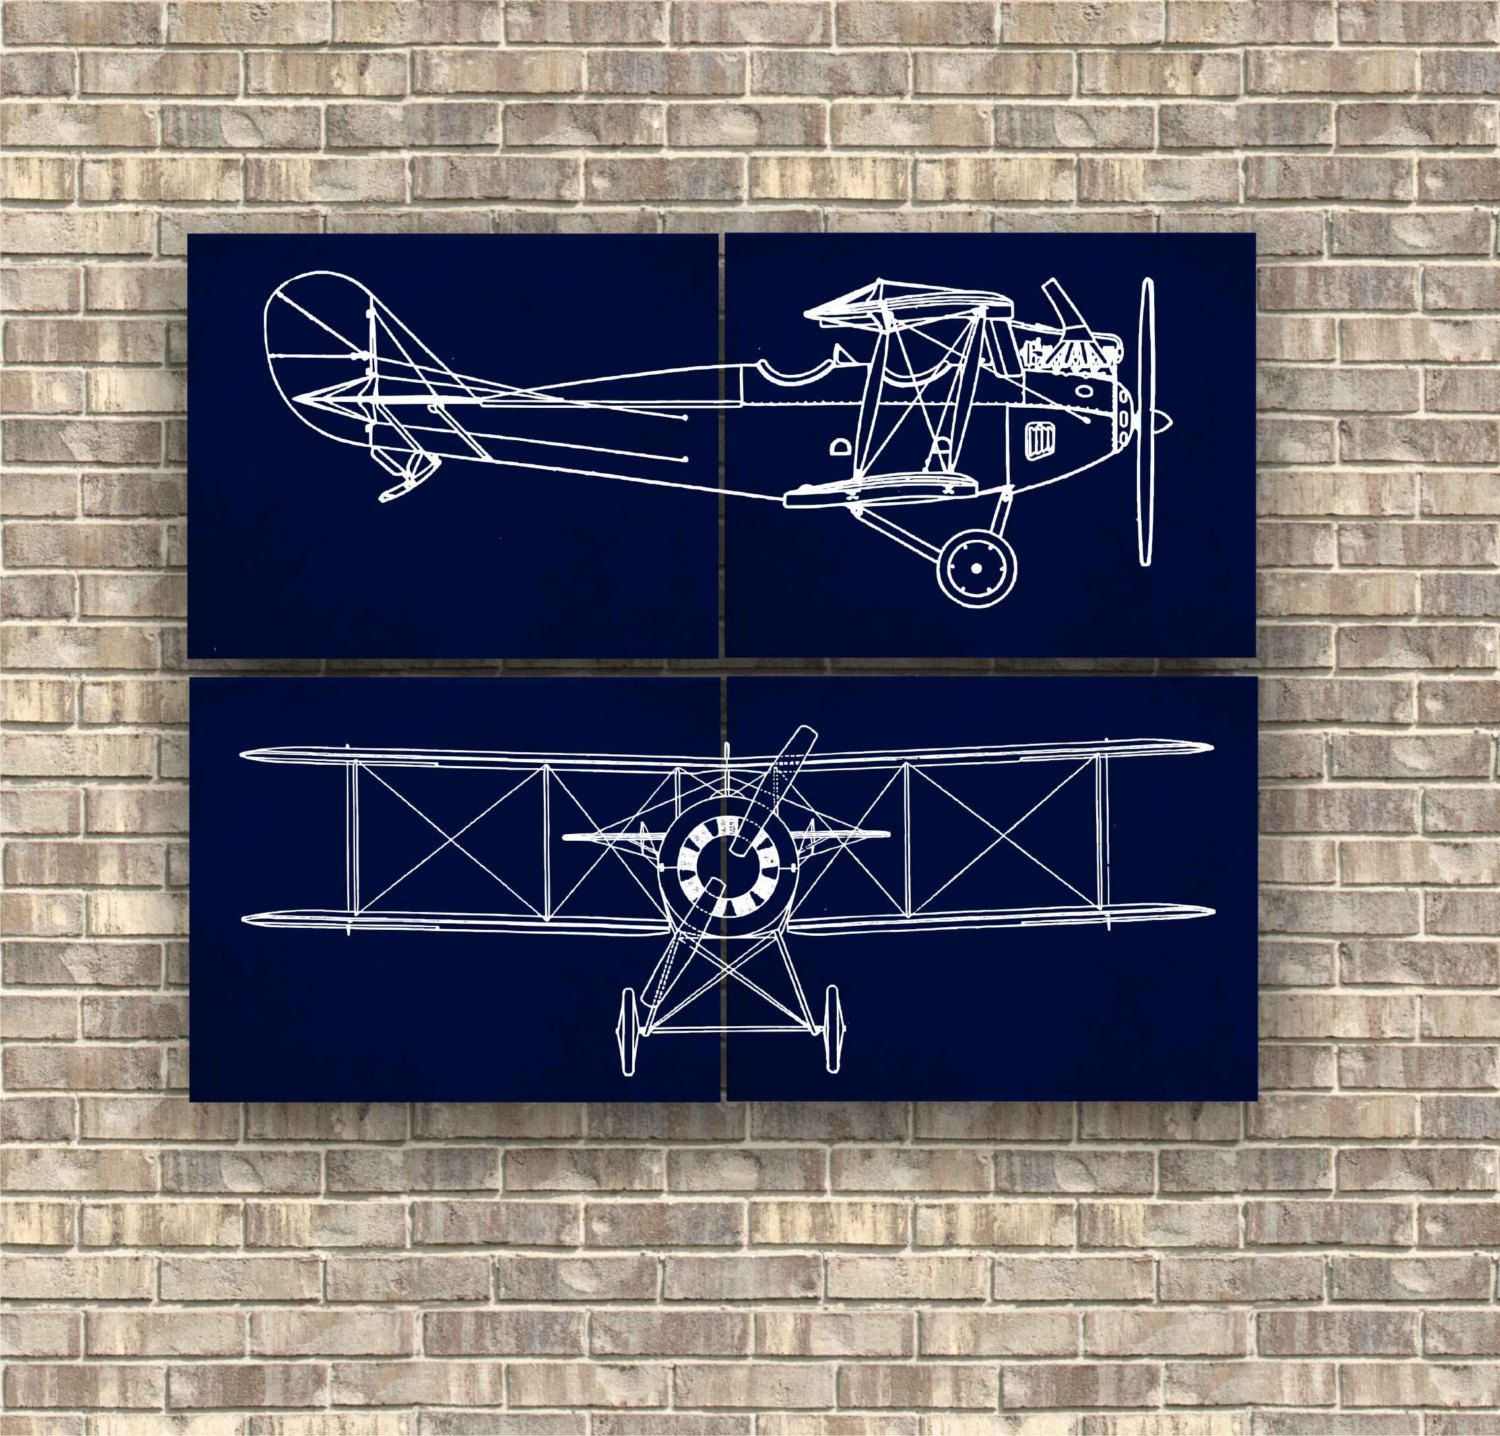 fullxfull listing cqxw download decor print instant airplane aviation art patent il